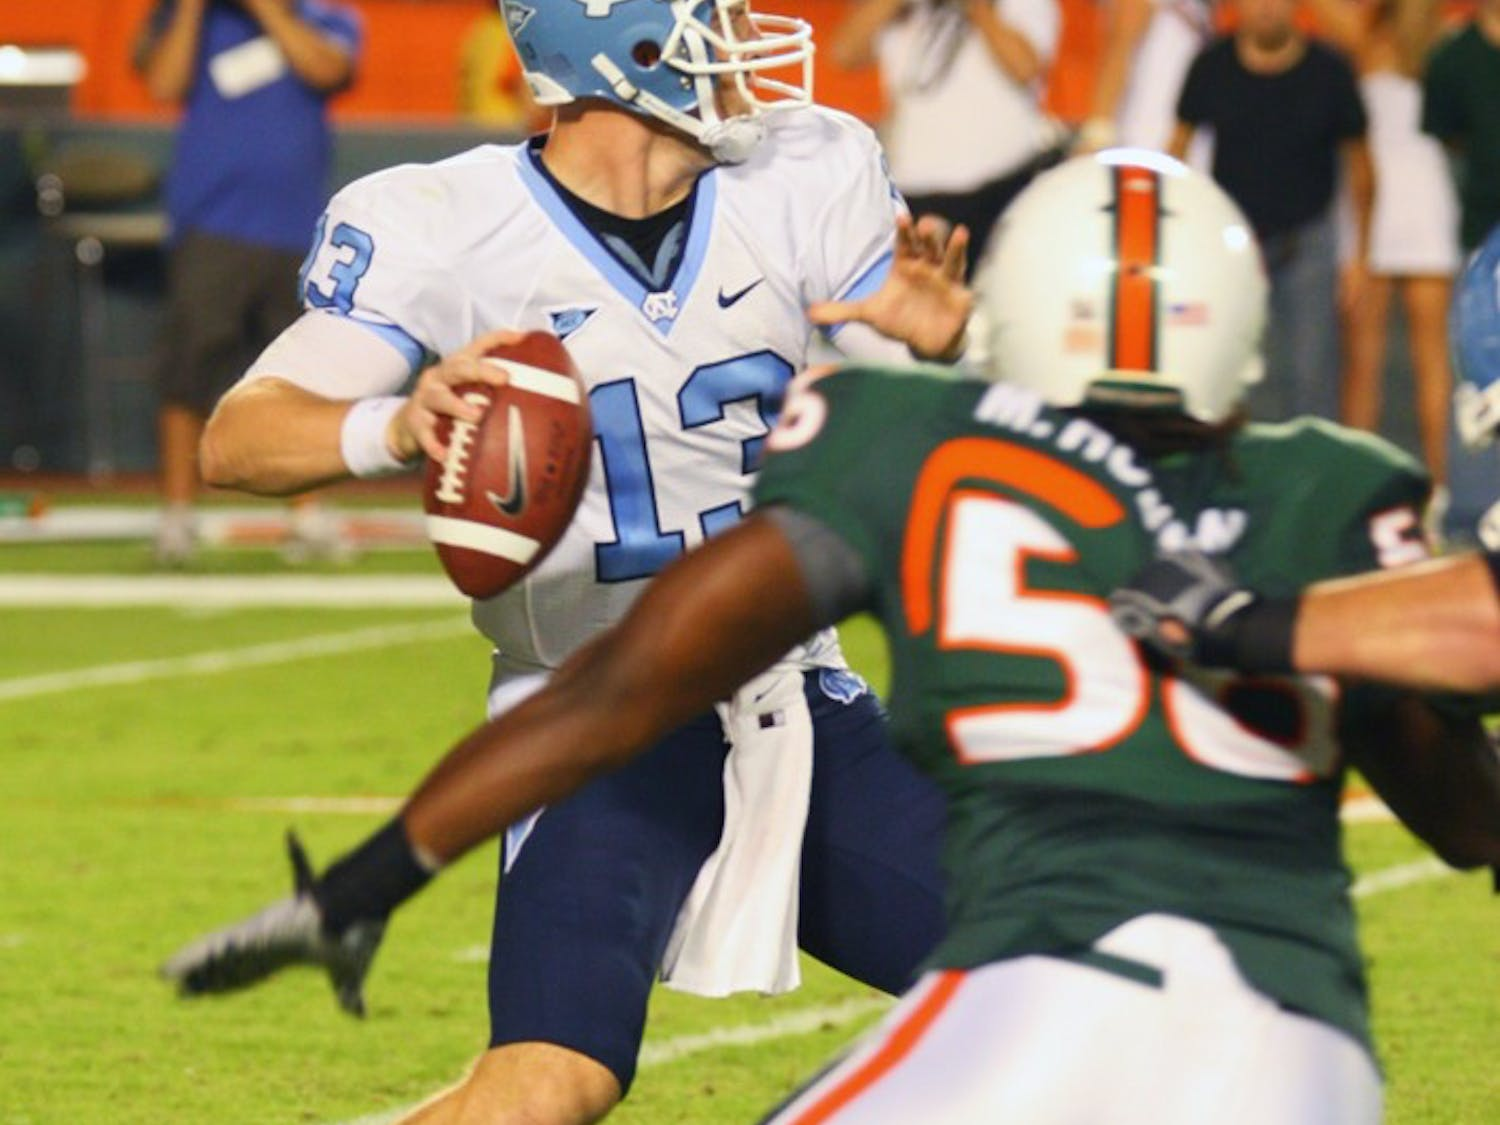 Quarterback T.J. Yates faced the No. 4 pass defense in the nation on offense.